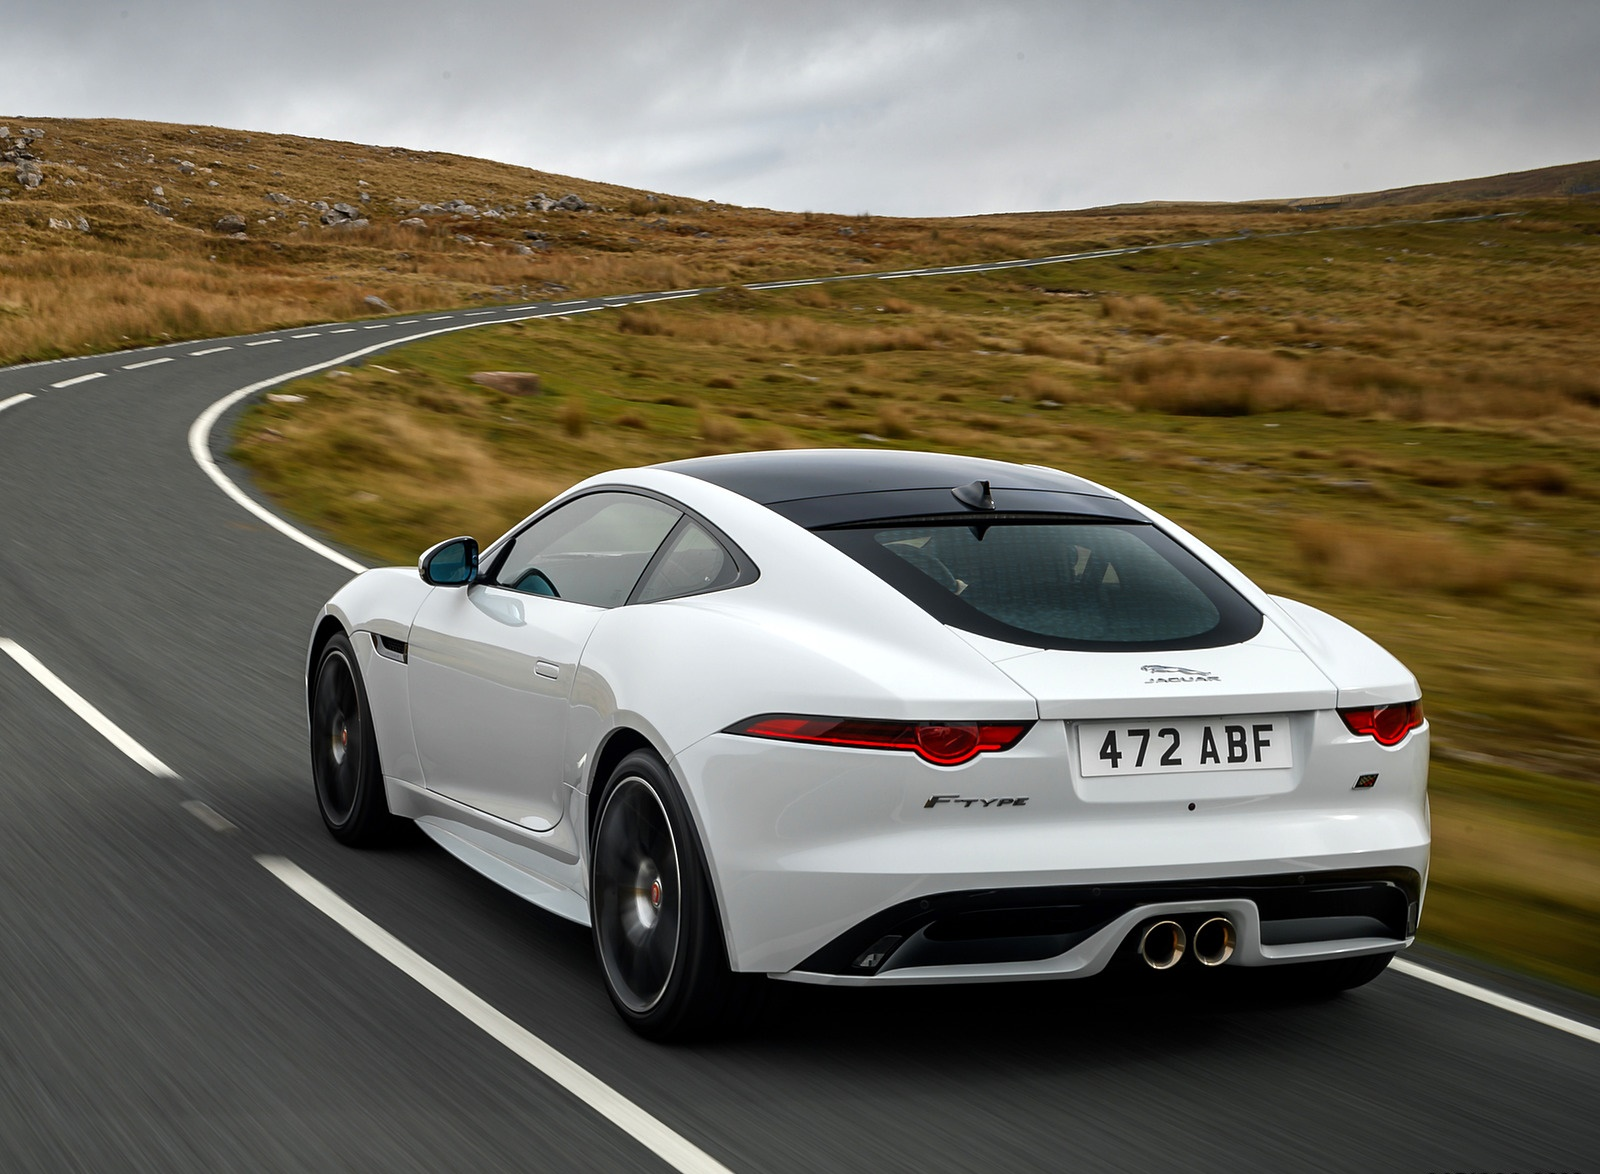 2019 Jaguar F-Type Chequered Flag Edition Rear Wallpaper (5)